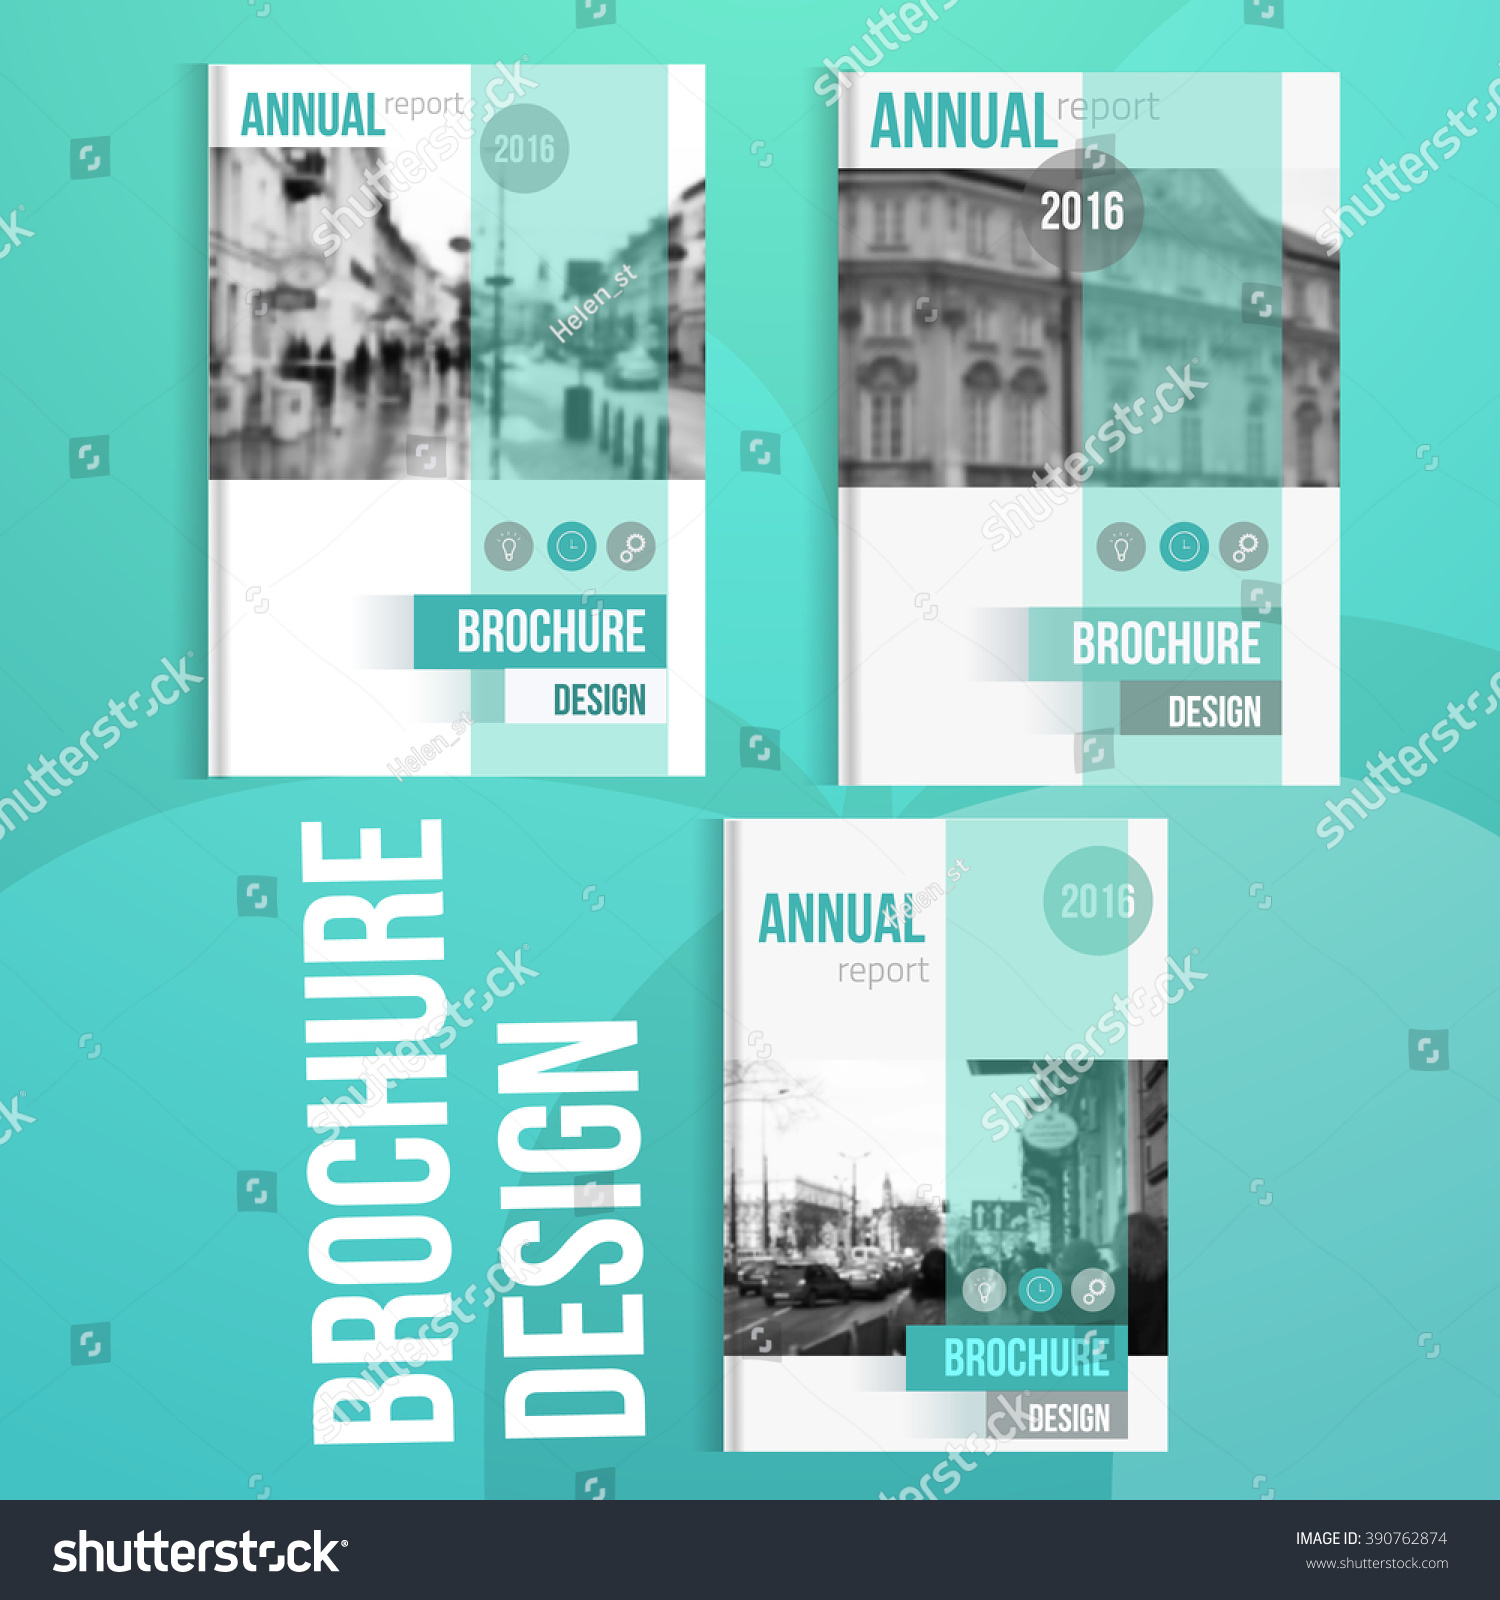 Brochure Booklet Flyer Or Book Cover Template Vector : Vector brochure cover templates blured city stock